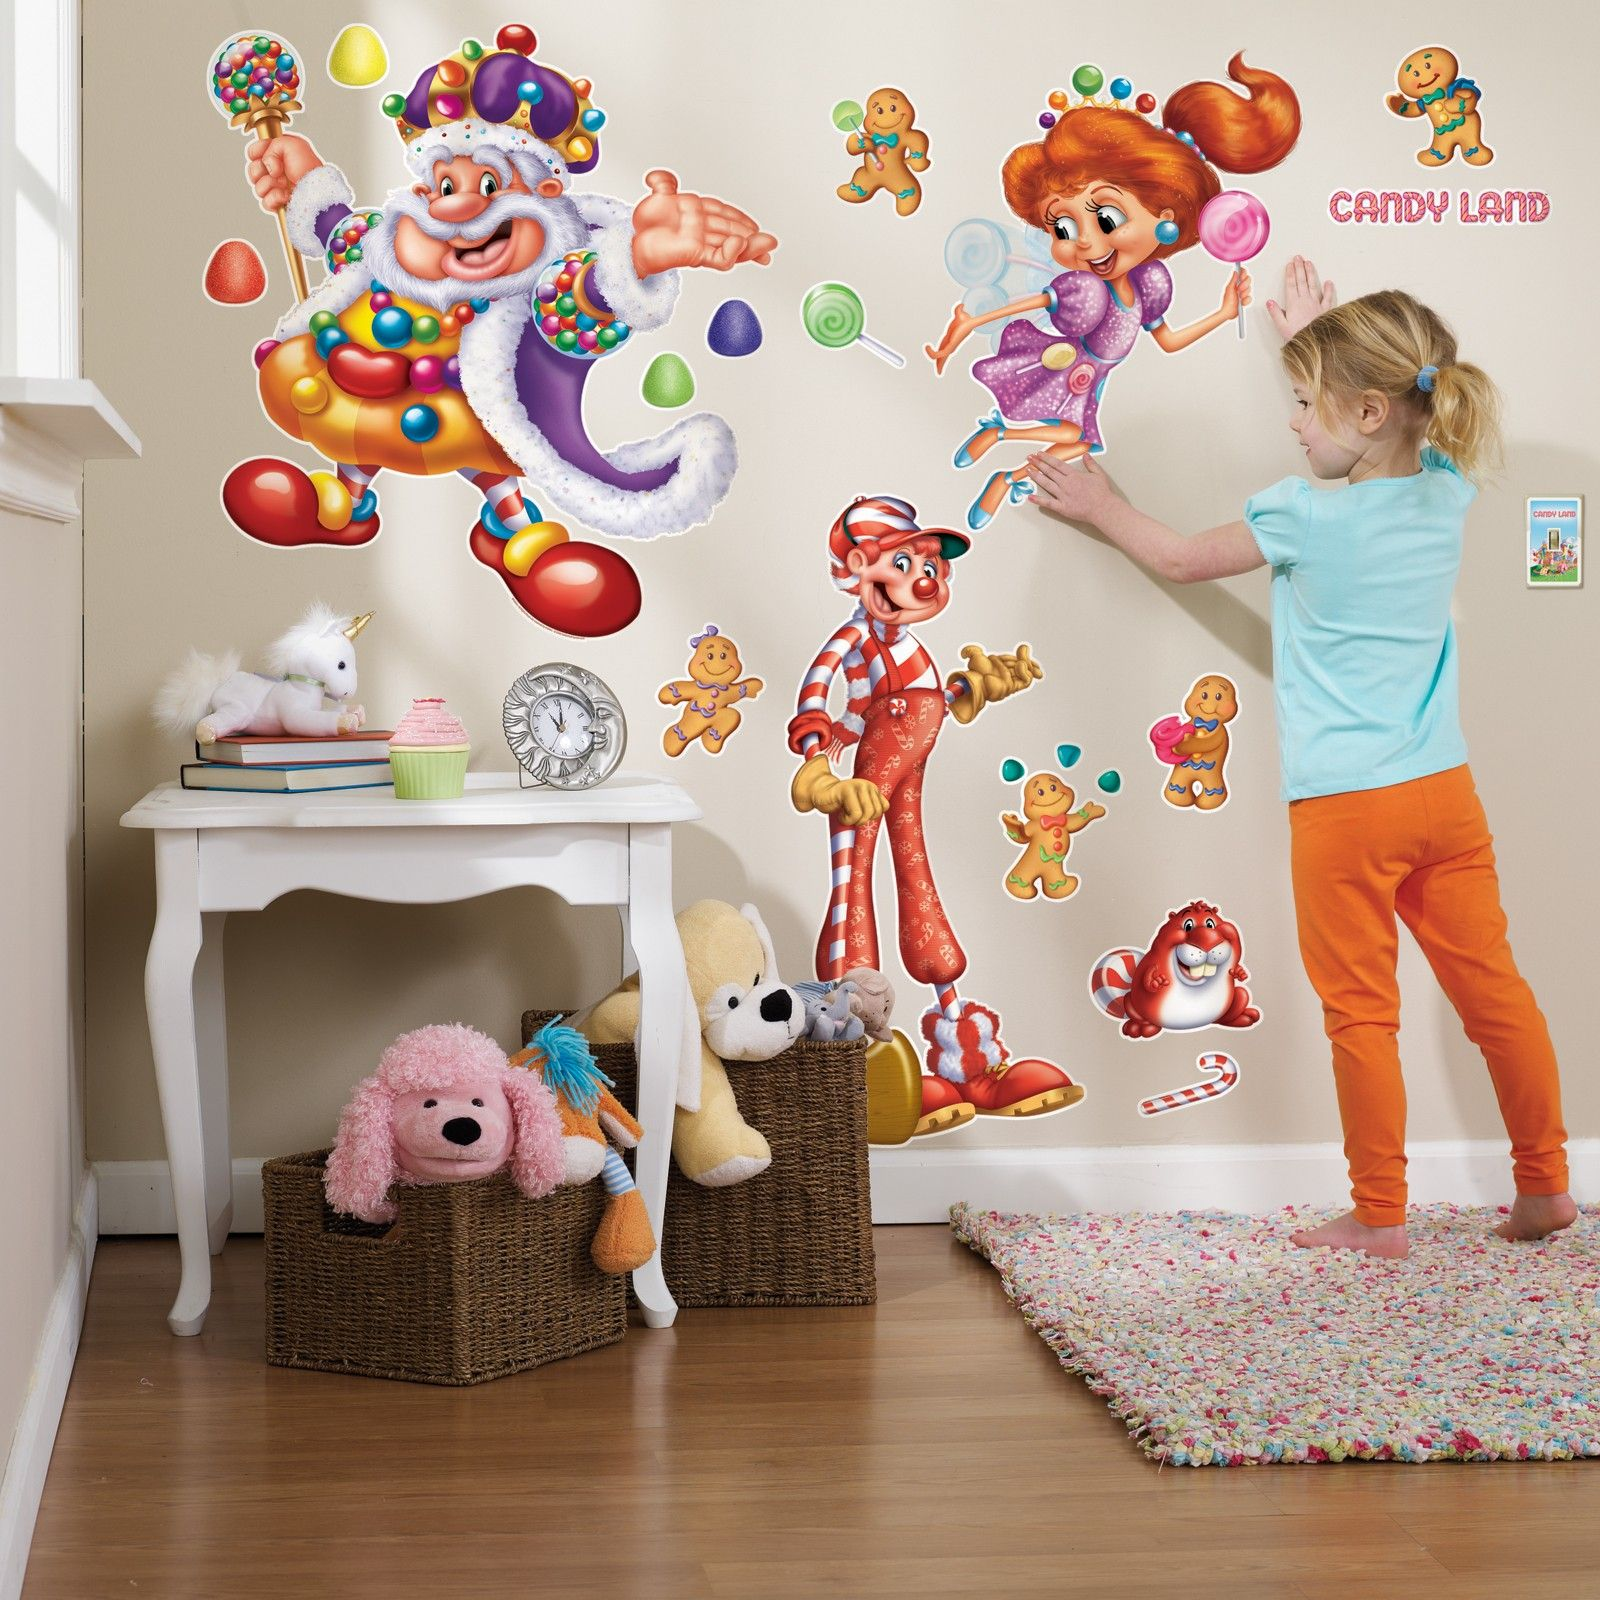 Candyland wall decals for classroom